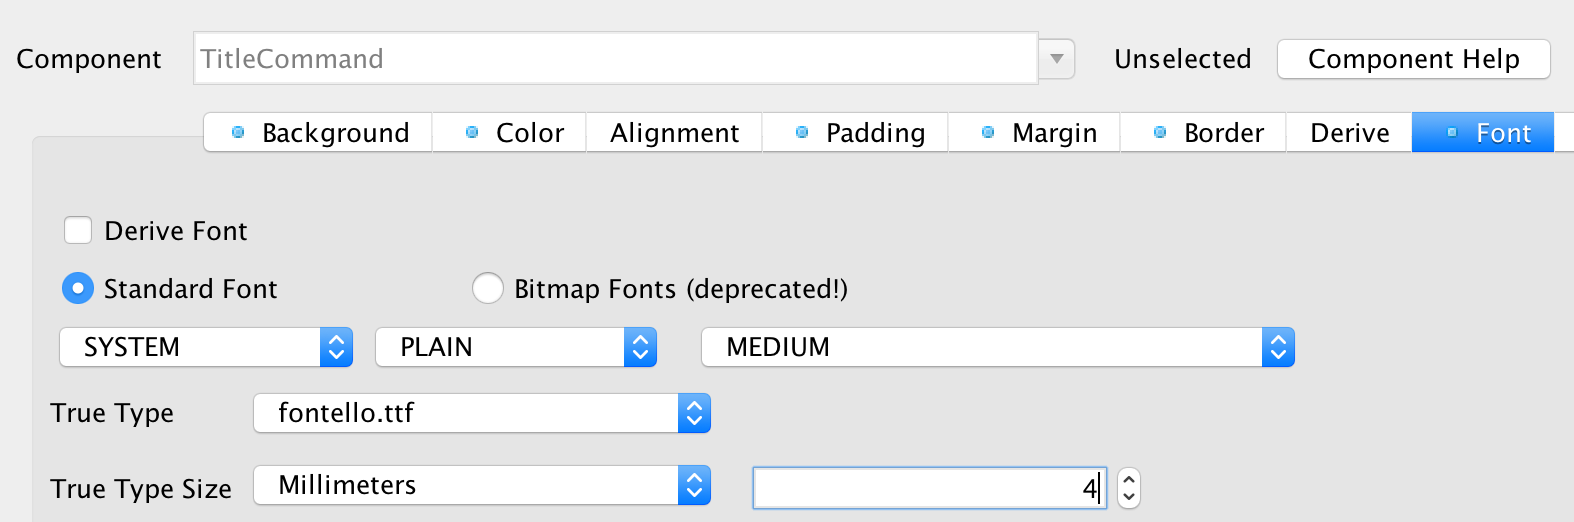 Using styles for icon fonts is the best way to define icon fonts